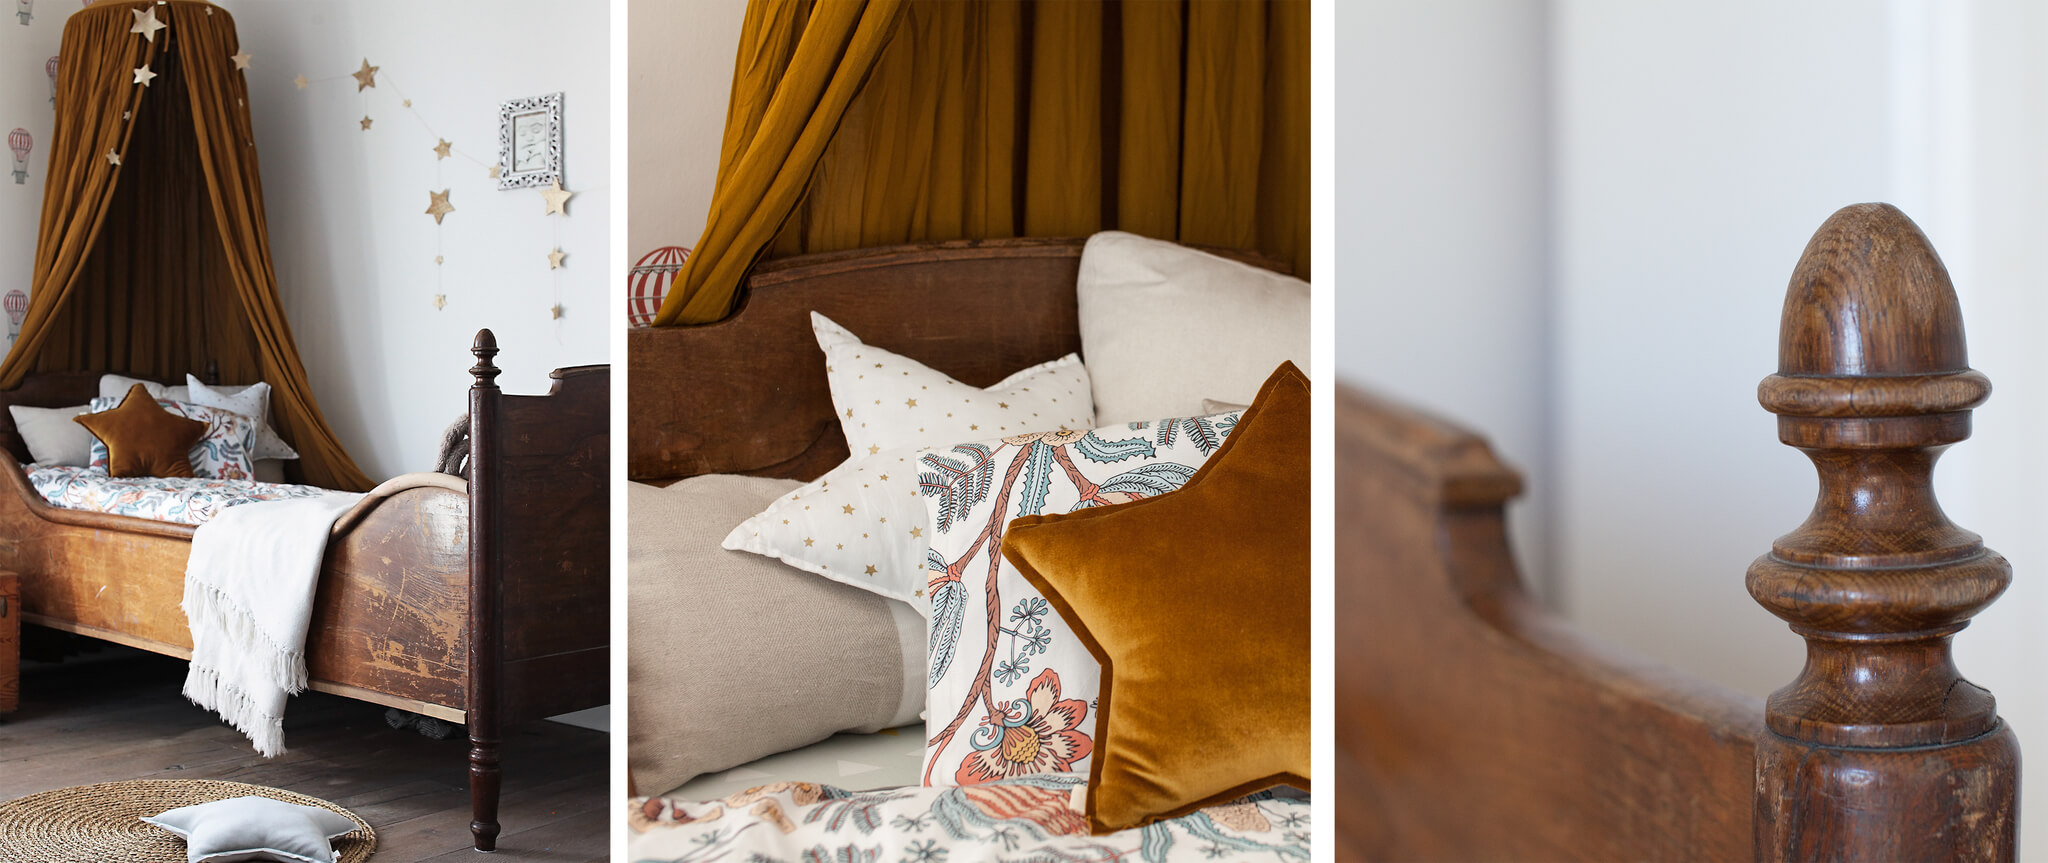 The charming Vintage room of Zofia